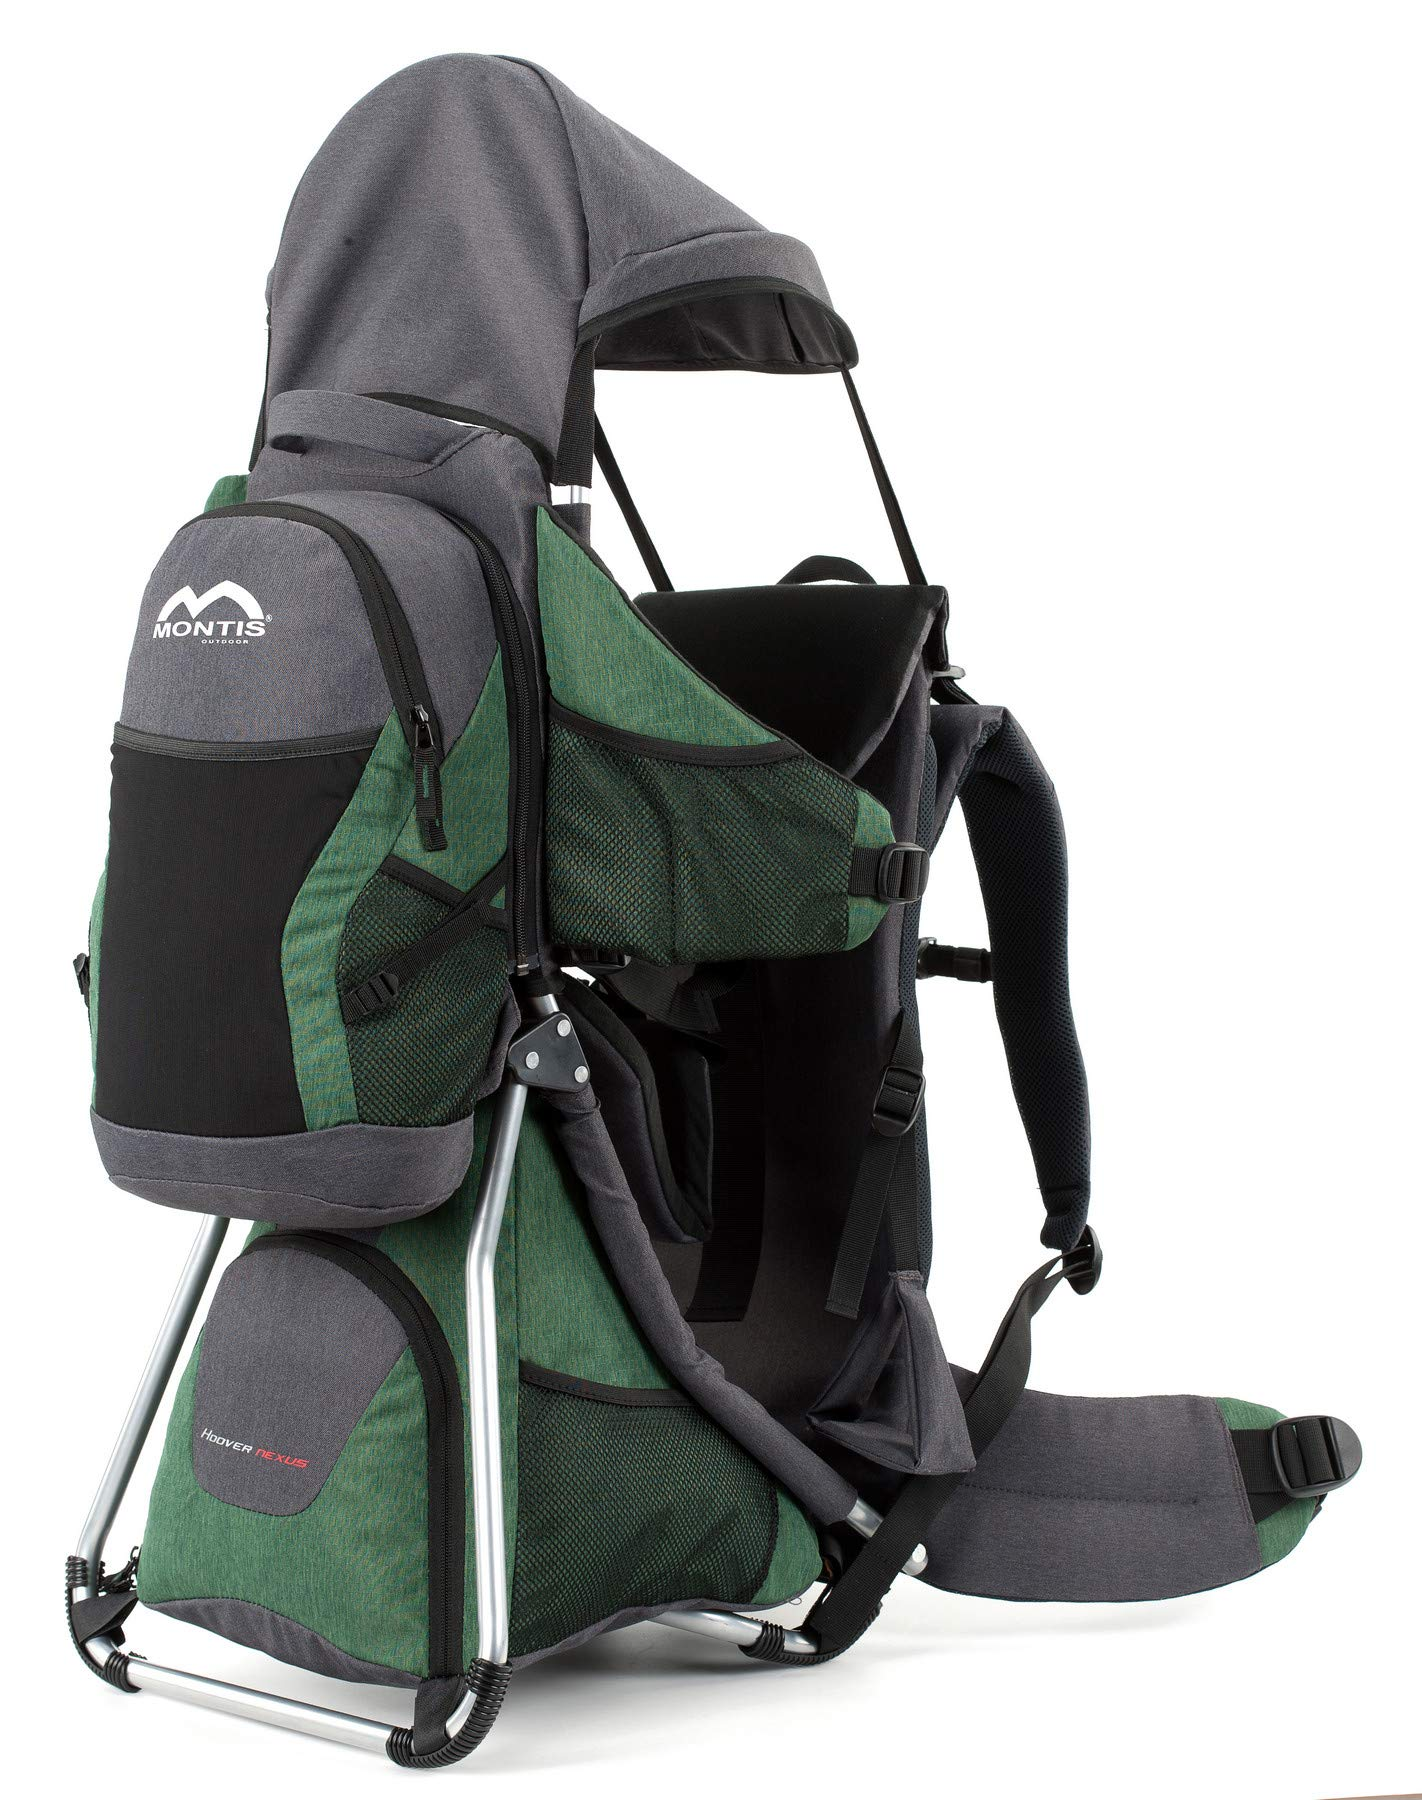 Montis HOOVER NEXUS, Child Hiking Backpack Carrier, suitable for babies & toddlers with a stable seat, low weight suitable, many extras, premium quality (GREEN) M MONTIS OUTDOOR ✅ SAFE - Practical baby carrier backpack completely adjustable with wide 5-point child harness for children weighing up to 25 kg instead of 20 kg. Thanks to height-adjustable seat cushions, padded side panels, a rear headrest, and forehead cushions, it is ideal for hiking in the city or in the country. With reflective elements on the front and back for night protection. ✅ COMFORTABLE - Suitable for both parents thanks to adjustable shoulder straps, a 14 cm adjustable chest strap with a vertical position for women's ergonomics, and reinforced back area (incl. ventilation system) with load distribution to the pelvic belts. We use materials of the highest quality and focus on flawless manufacturing. ✅ SPACIOUS - Removable additional backpack 10L and seat pocket with 18L volume provide the carrier with additional storage space for water bottles, rain protection, sun protection, changing mat and much more. In addition, the straps of the baby carrier are equipped with small quick-access pockets to avoid the need of constantly taking off the carrier. 2